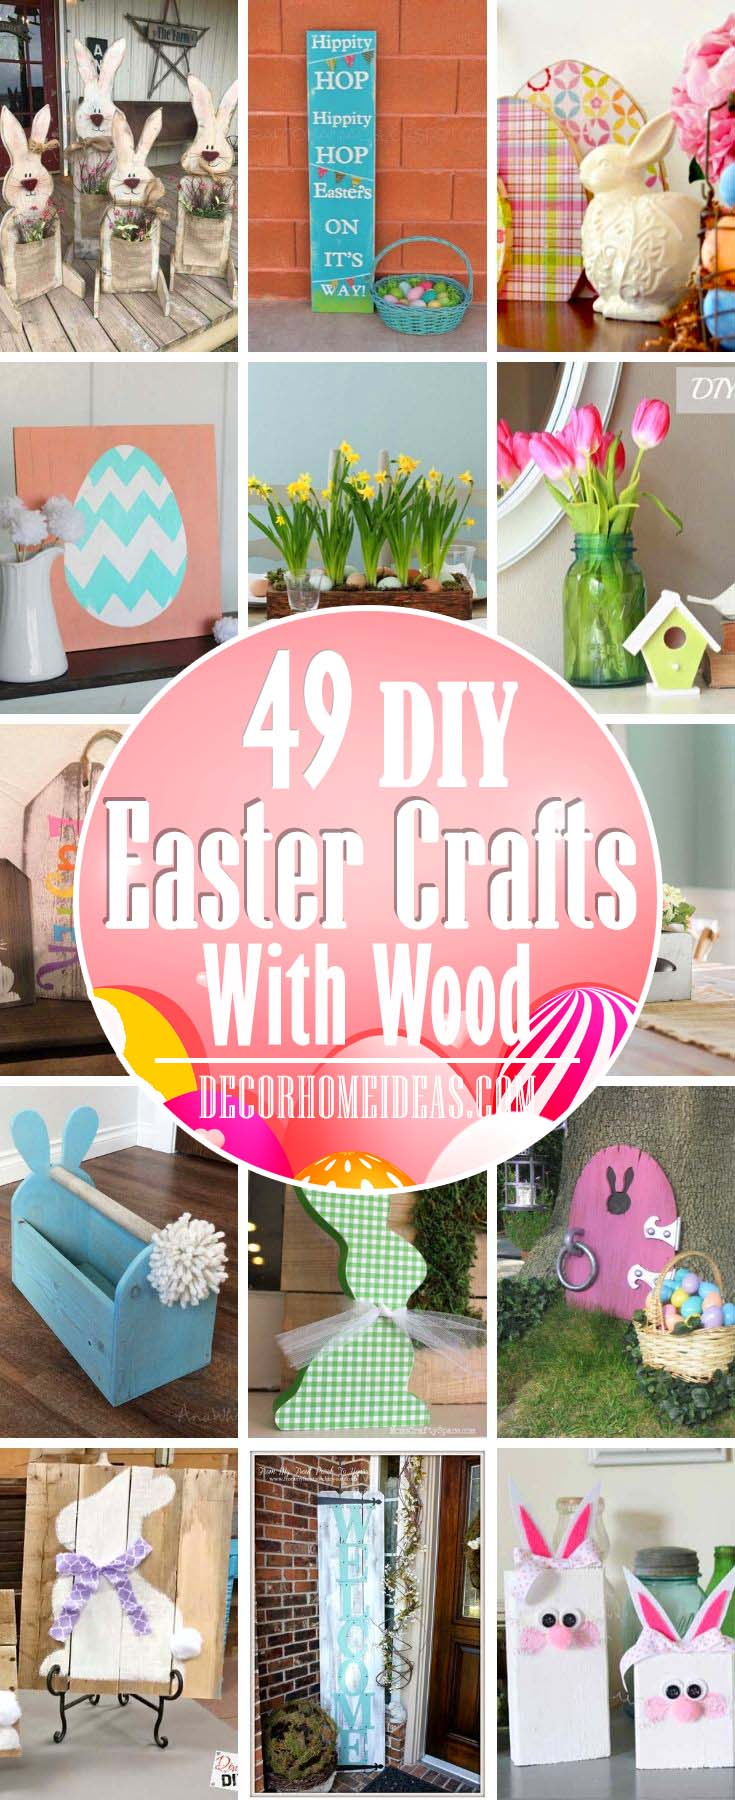 DIY Easter Crafts With Wood. Best wooden crafts to celebrate Easter and decorate for the holiday. Porch decor, centerpieces, various decorations. #diy #easter #crafts #wood #decorhomeideas